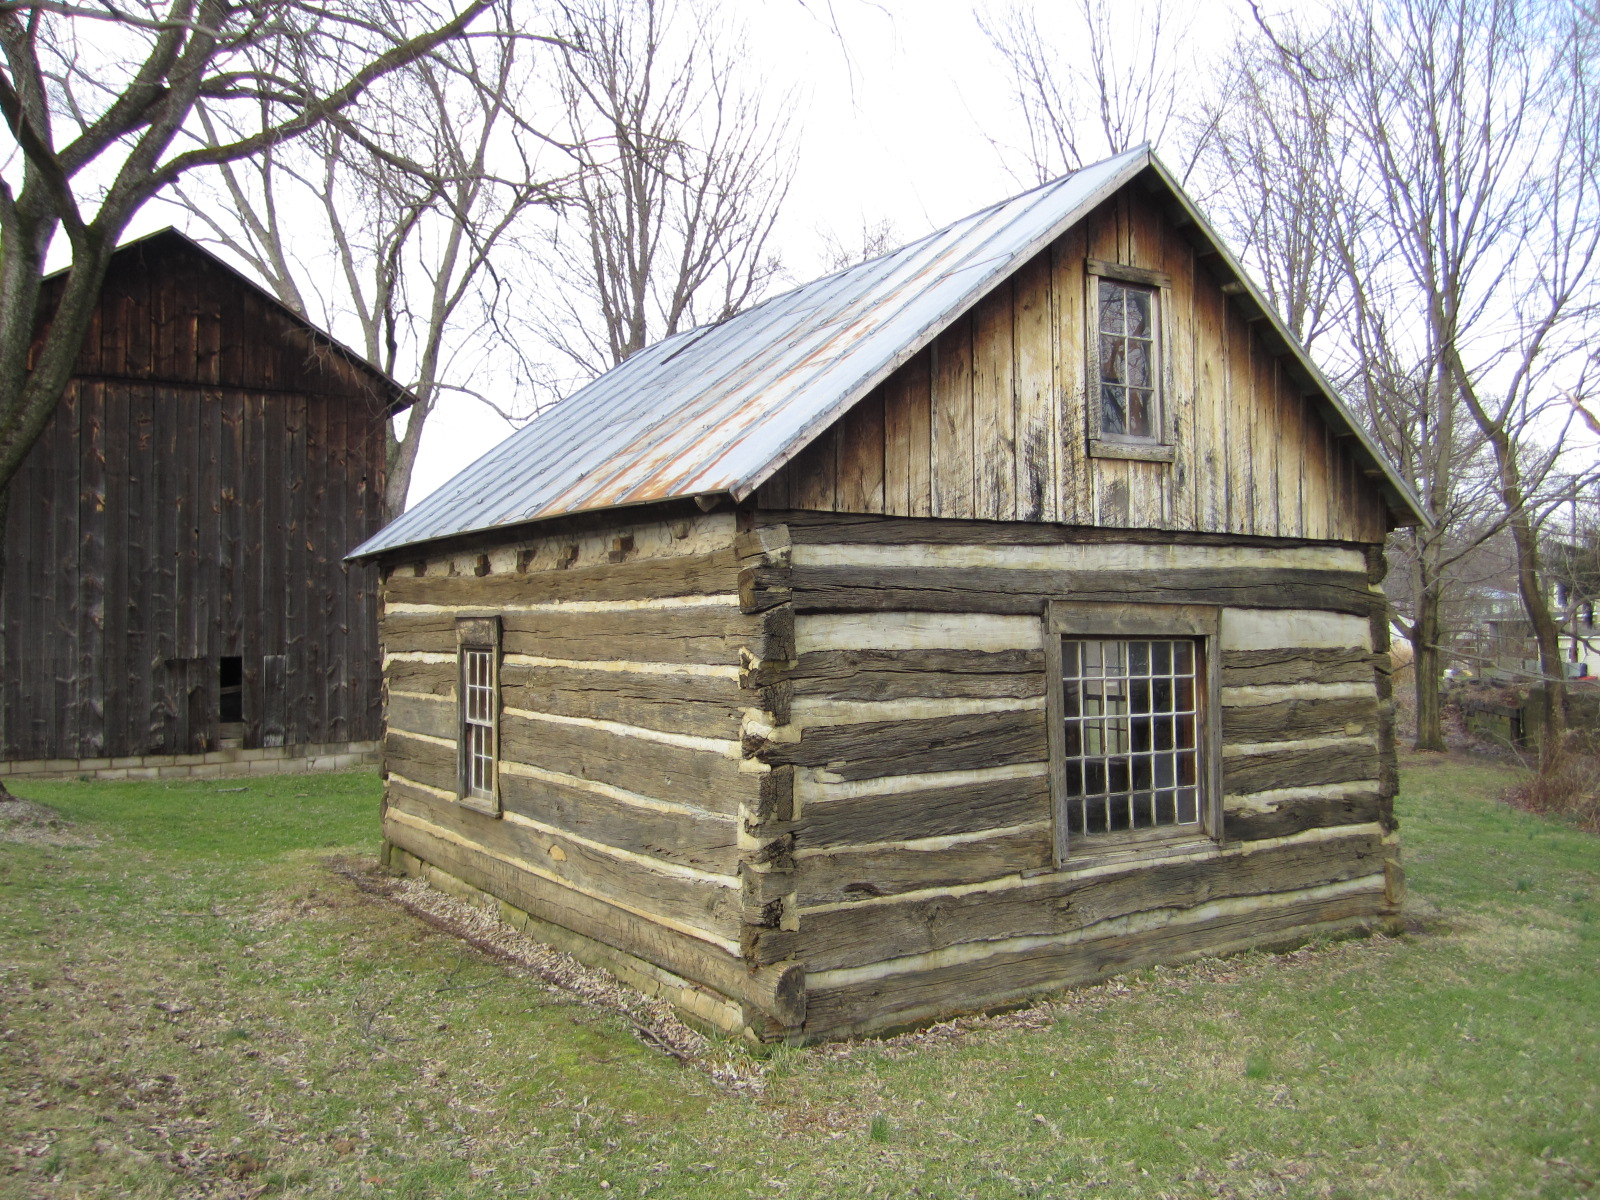 #7C744F Beside The Tobacco Barn Was This Old 1800's Log Cabin. Very Cool! with 1600x1200 px of Brand New Log Cabin Barn 12001600 pic @ avoidforclosure.info